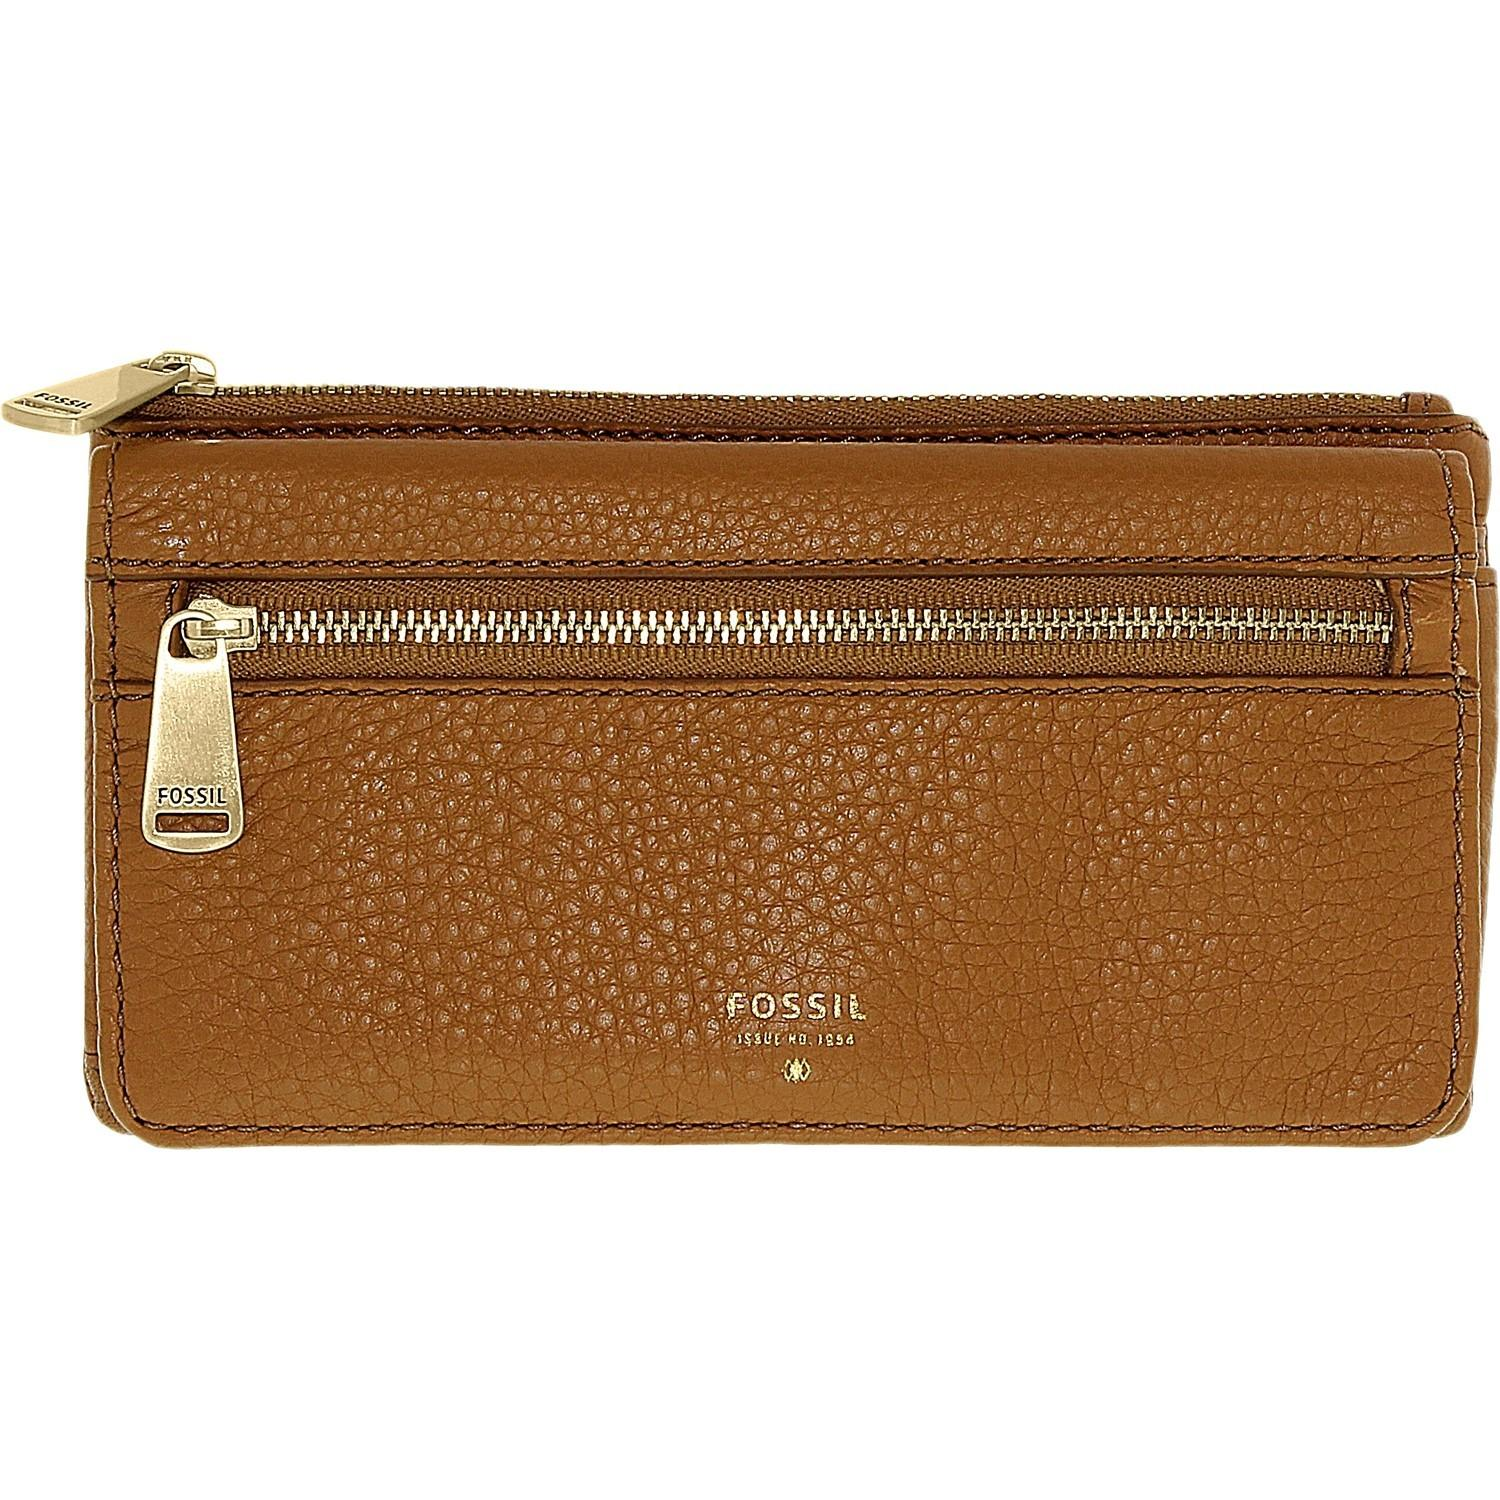 Fossil Women Preston Flap Clutch Leather Wallet Baguette